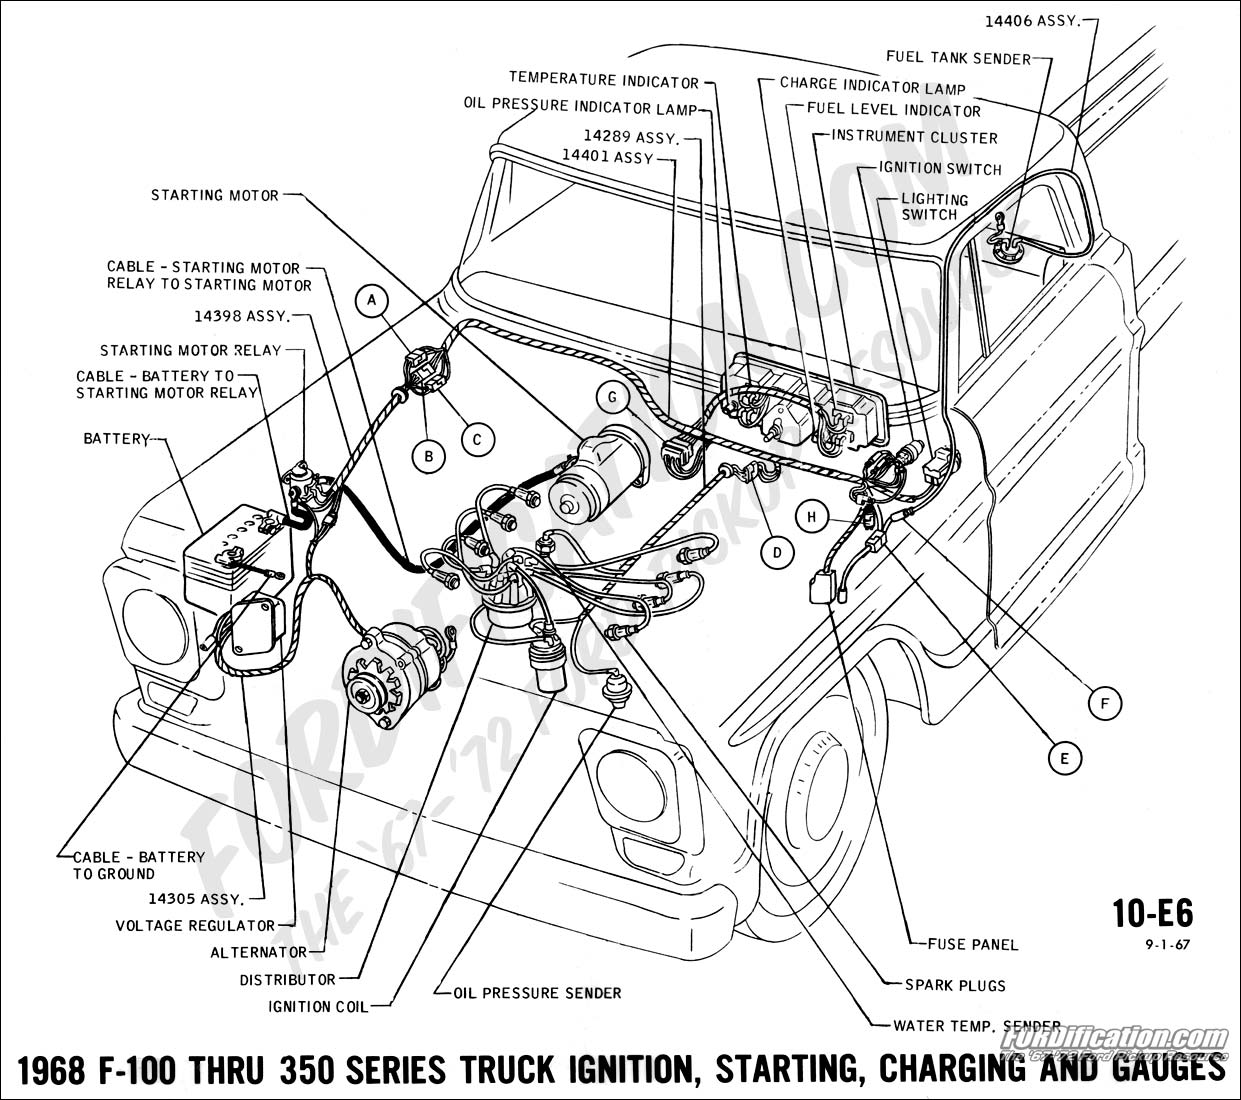 Ford Truck Technical Drawings And Schematics Section H Wiring Relay Diagrams 1968 F 100 Thru 350 Ignition Starting Charging Gauges